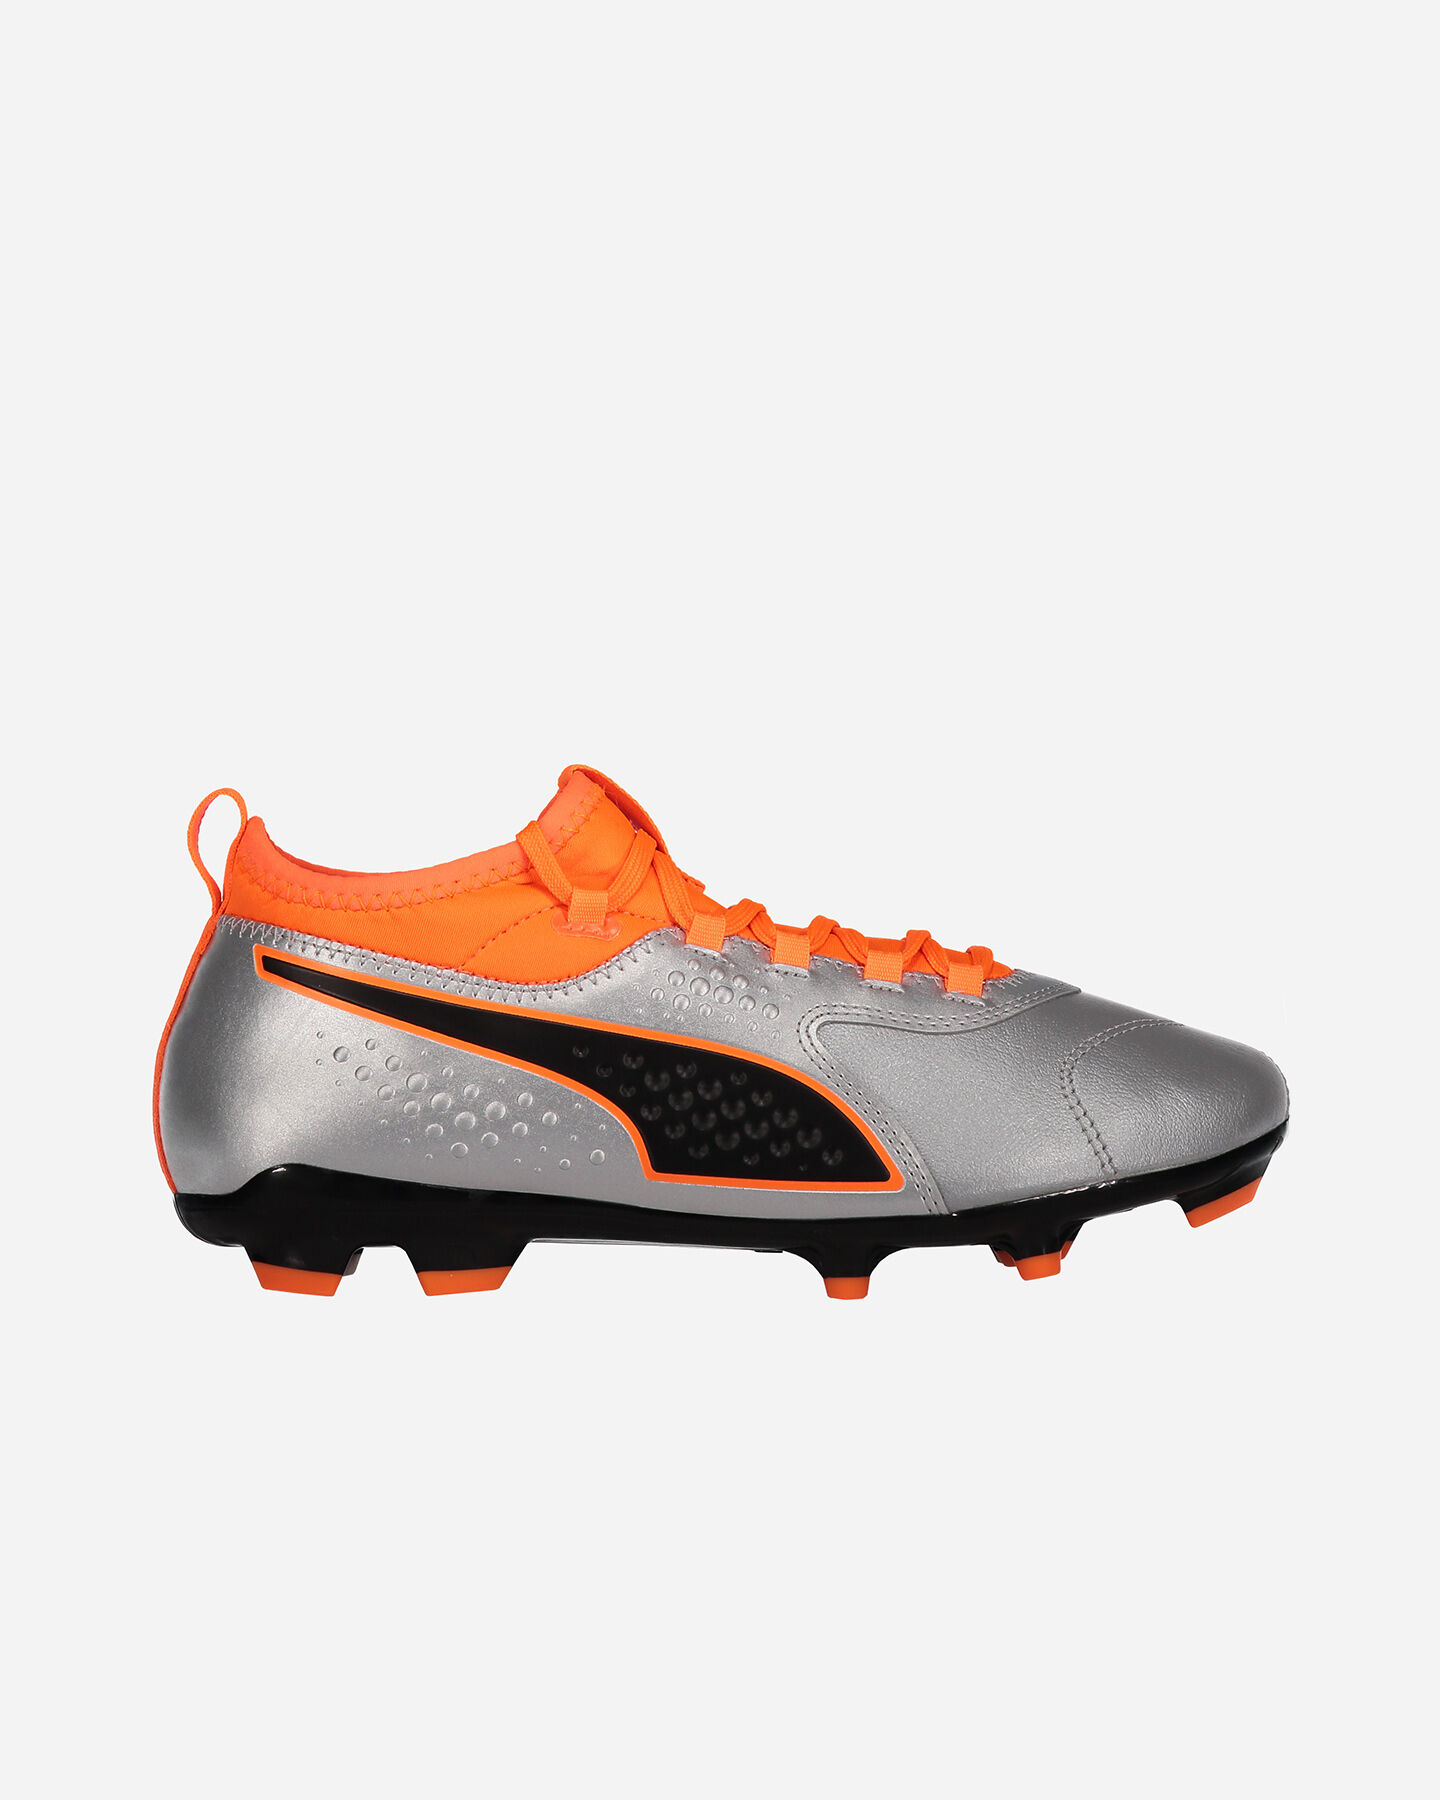 Calcio Fg Leather One unisex Jr Puma 3 Bambino pq8pwz